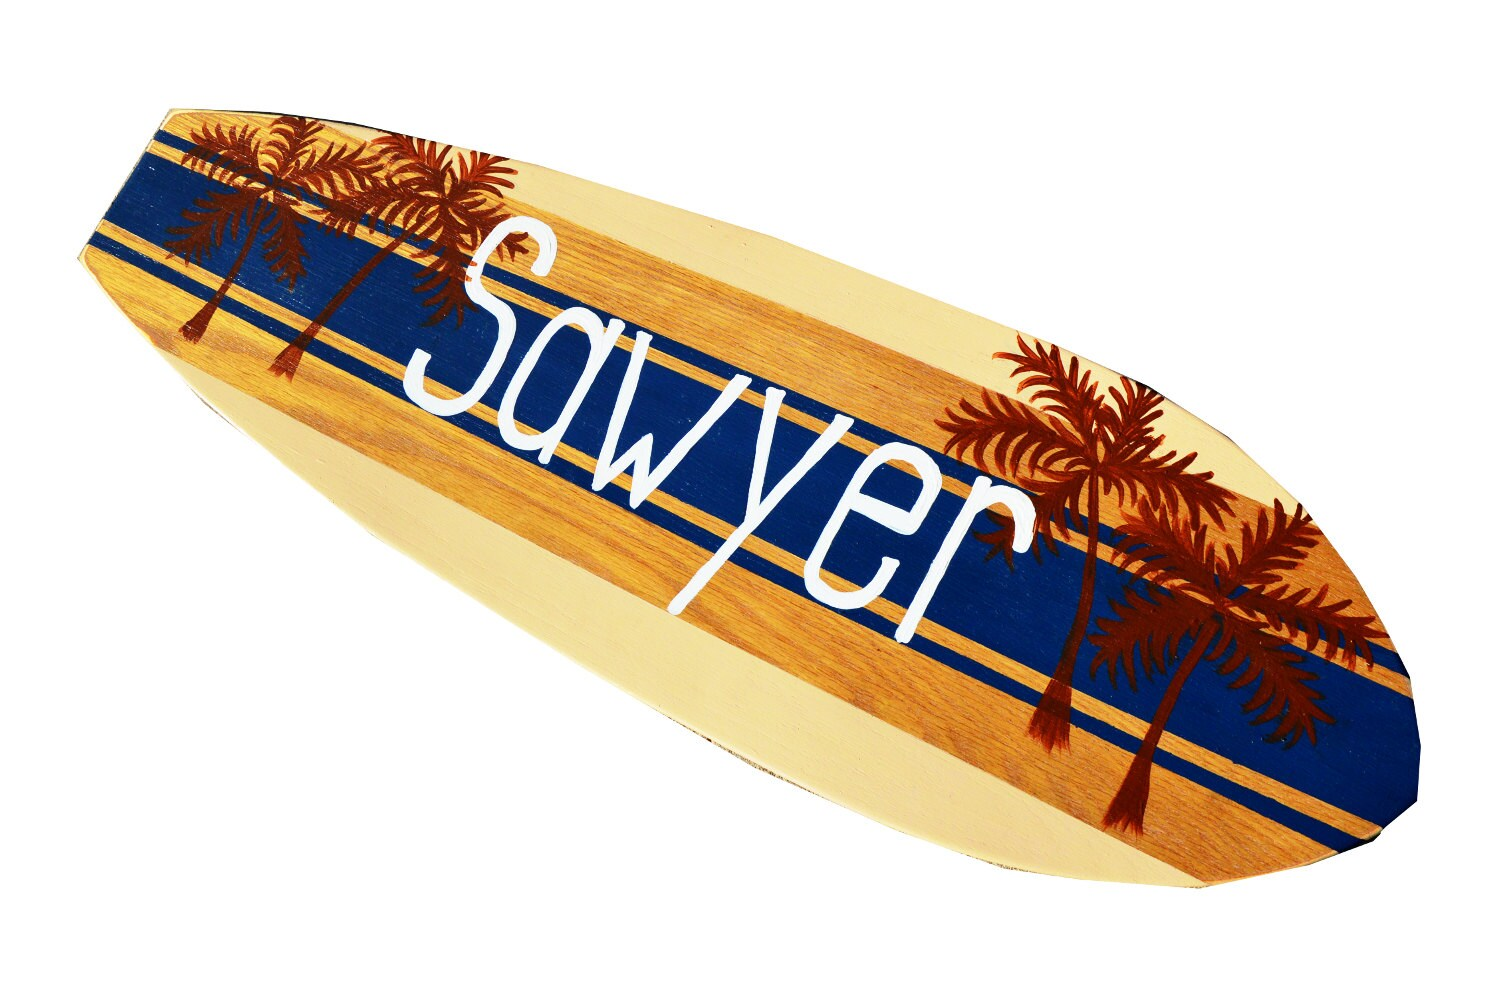 Surfboard wall art personalized surf decor custom beach for Planche de surf decorative